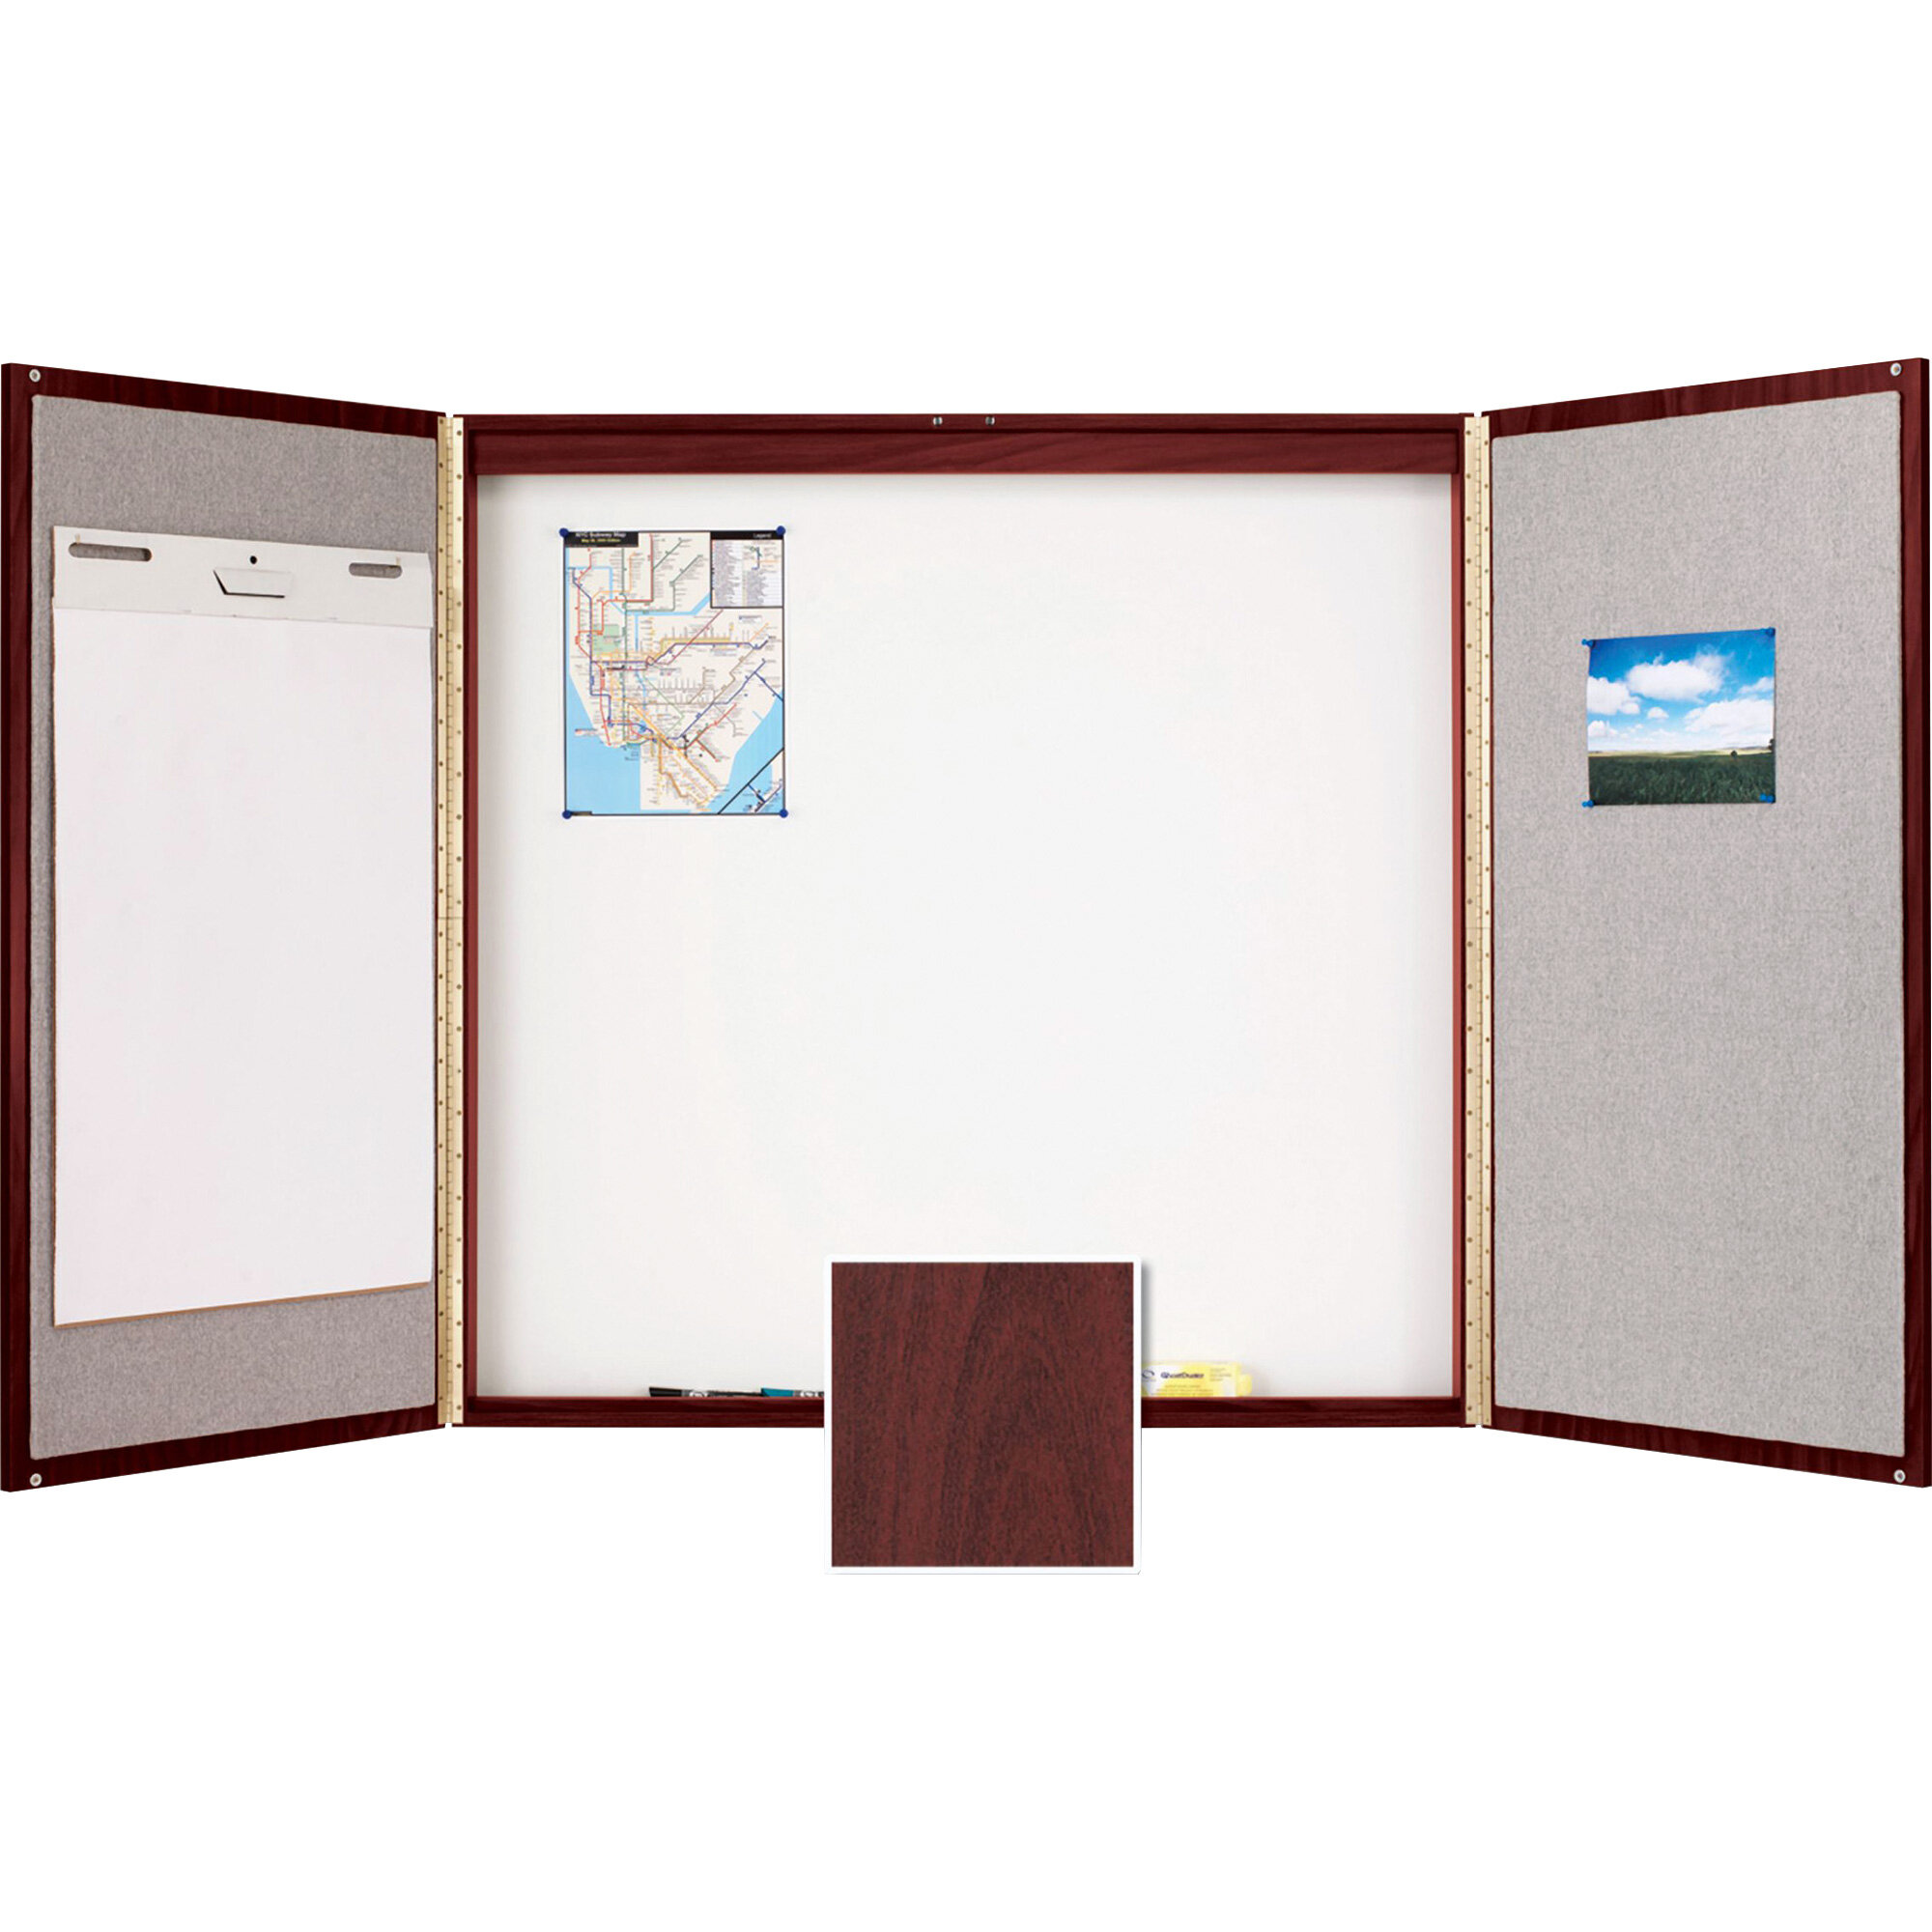 Quartet Conference Room Enclosed Cabinet Whiteboard 4 H X 4 W Reviews Wayfair